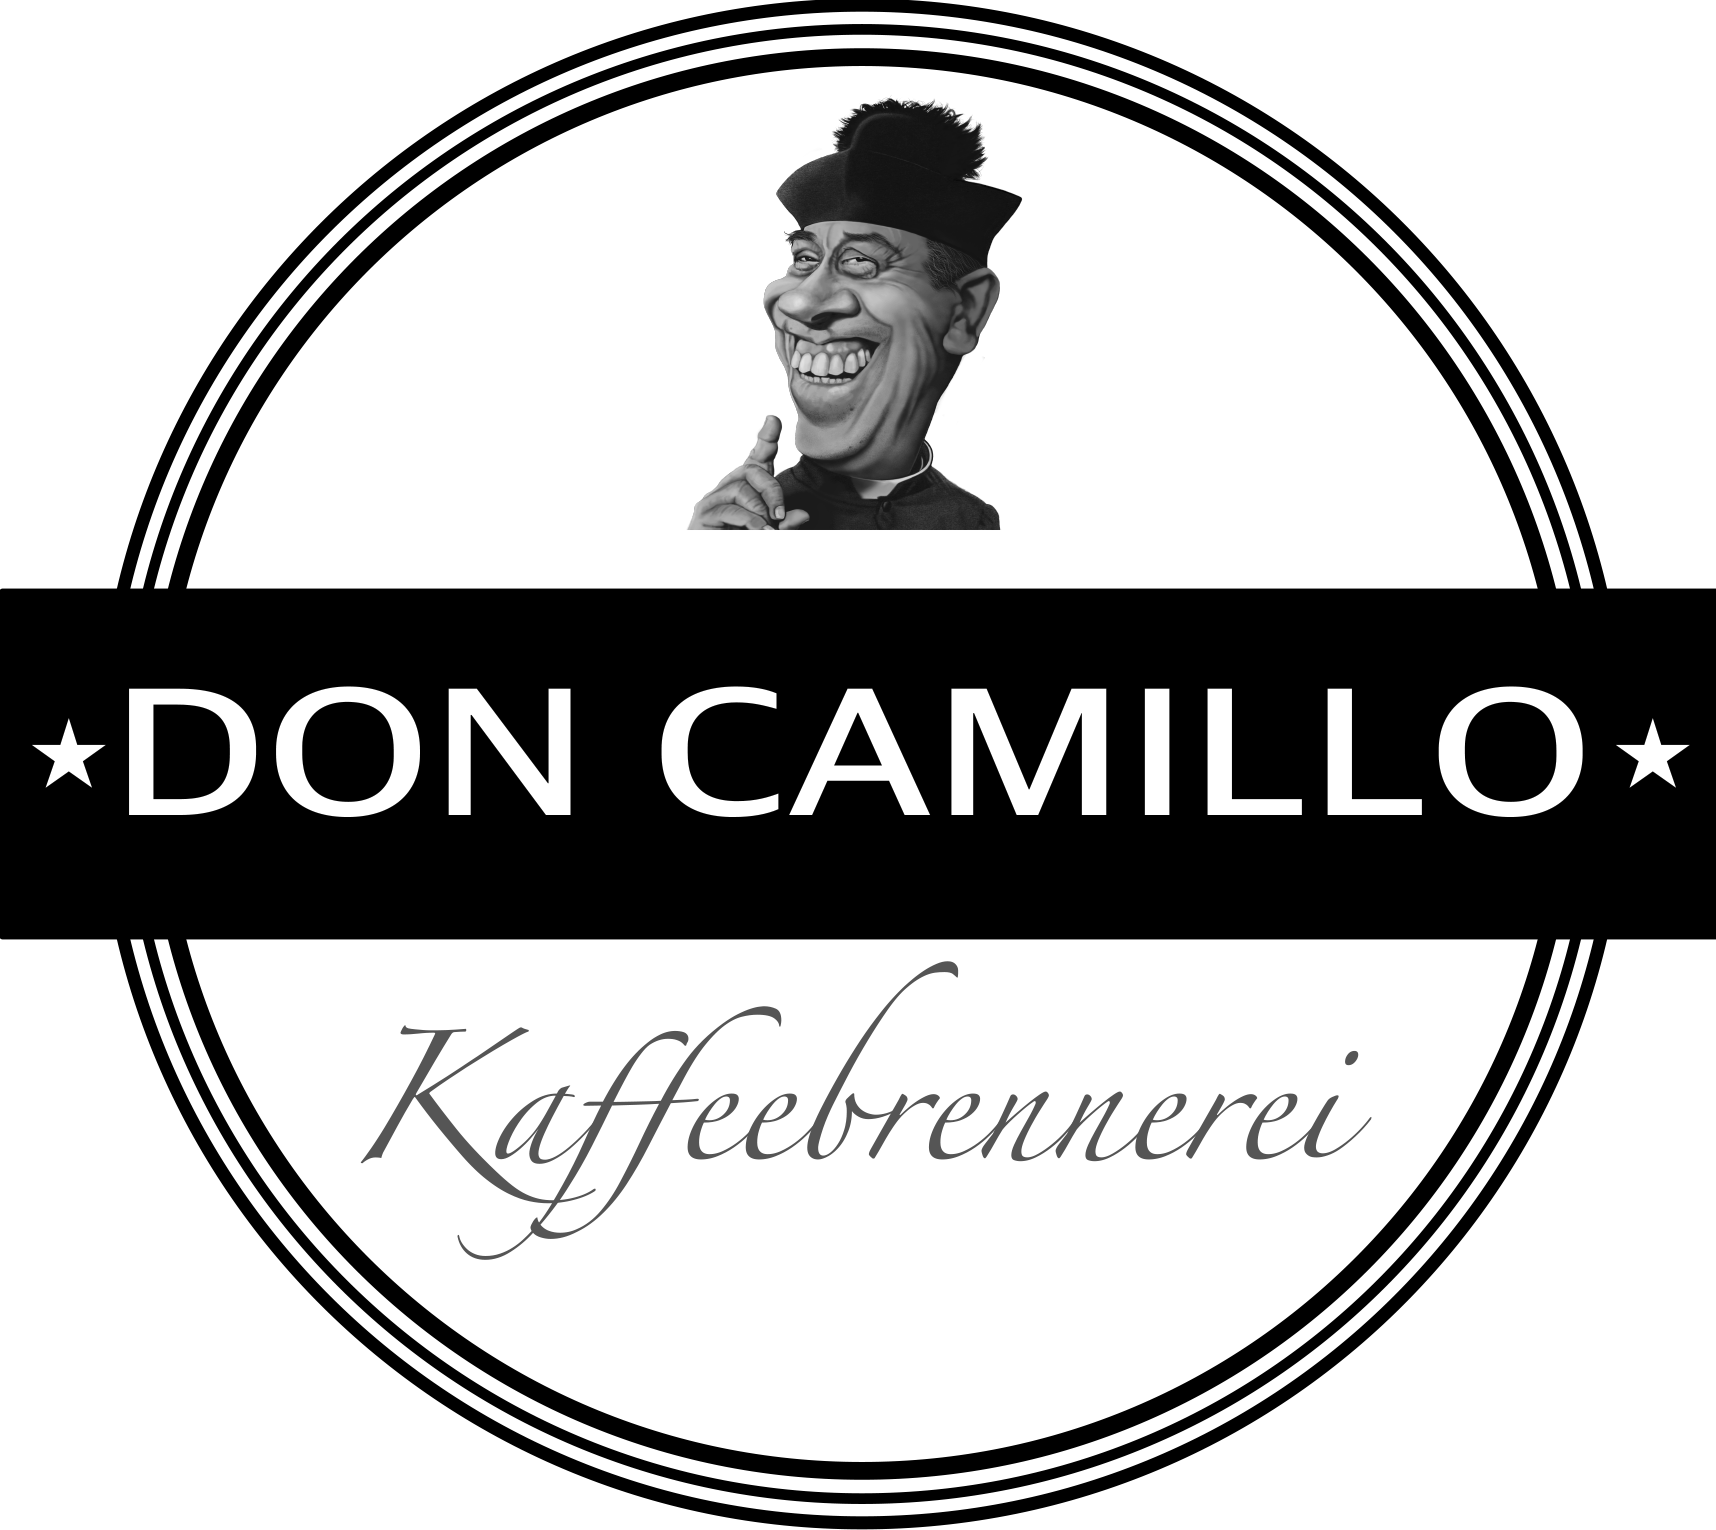 Camillo-Vistitenkarte